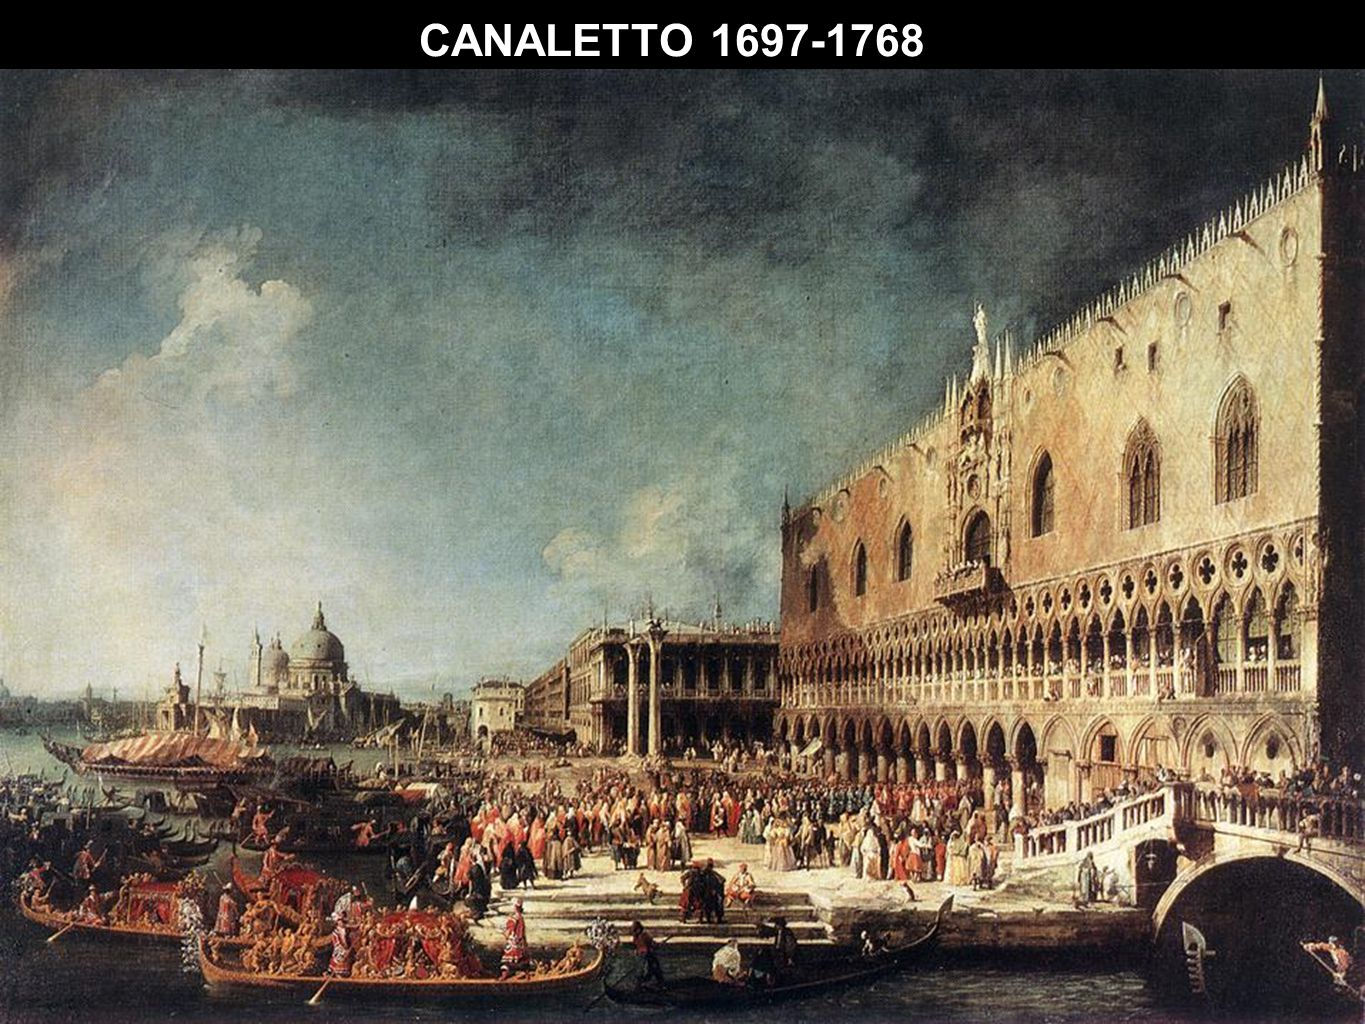 CANALETTO 1697-1768